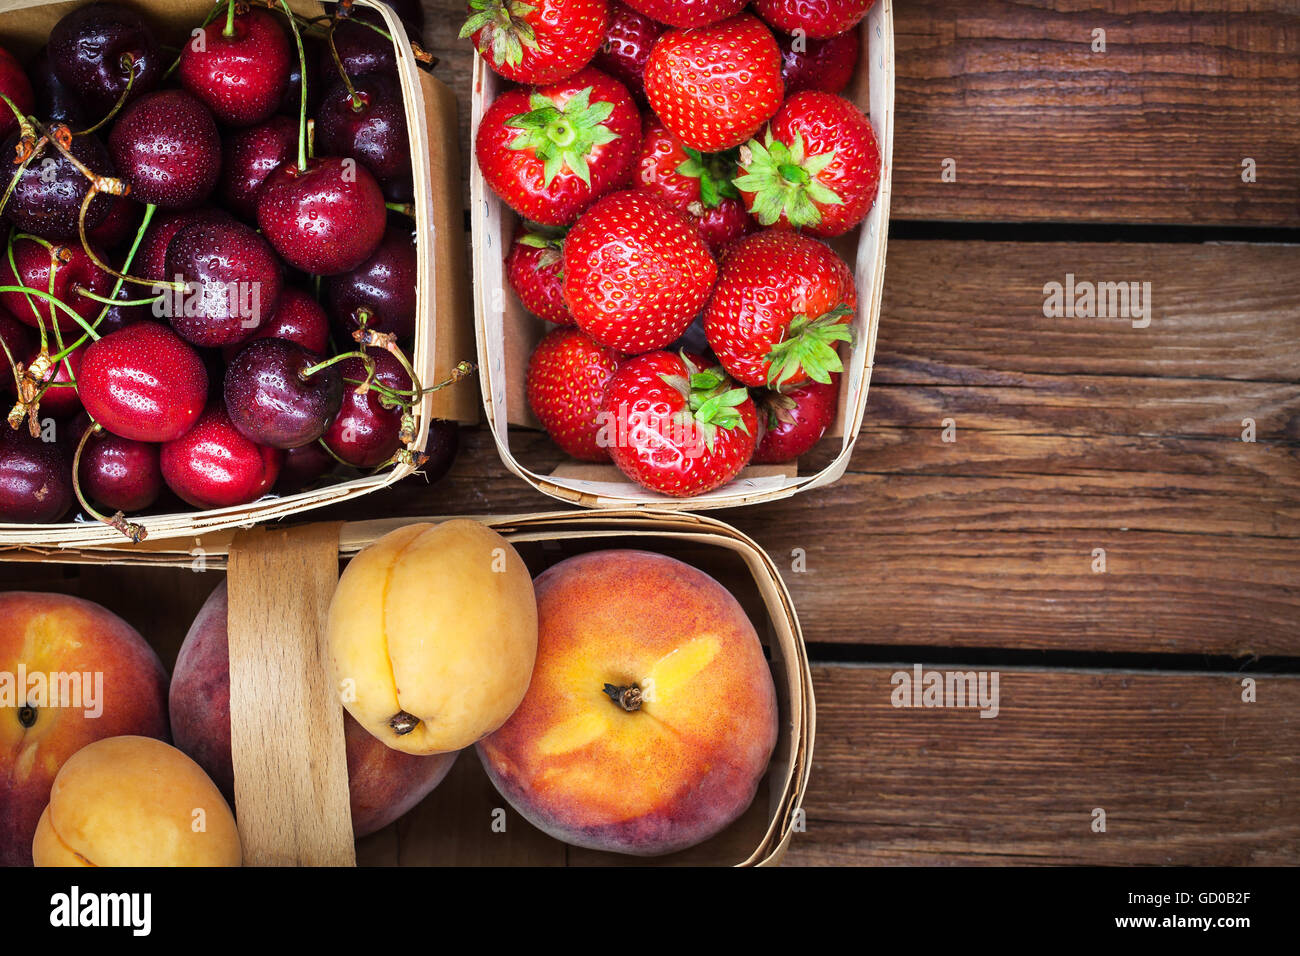 Fresh ripe summer berries and fruits (peaches, apricots, cherry, strawberry) in baskets, top view - Stock Image